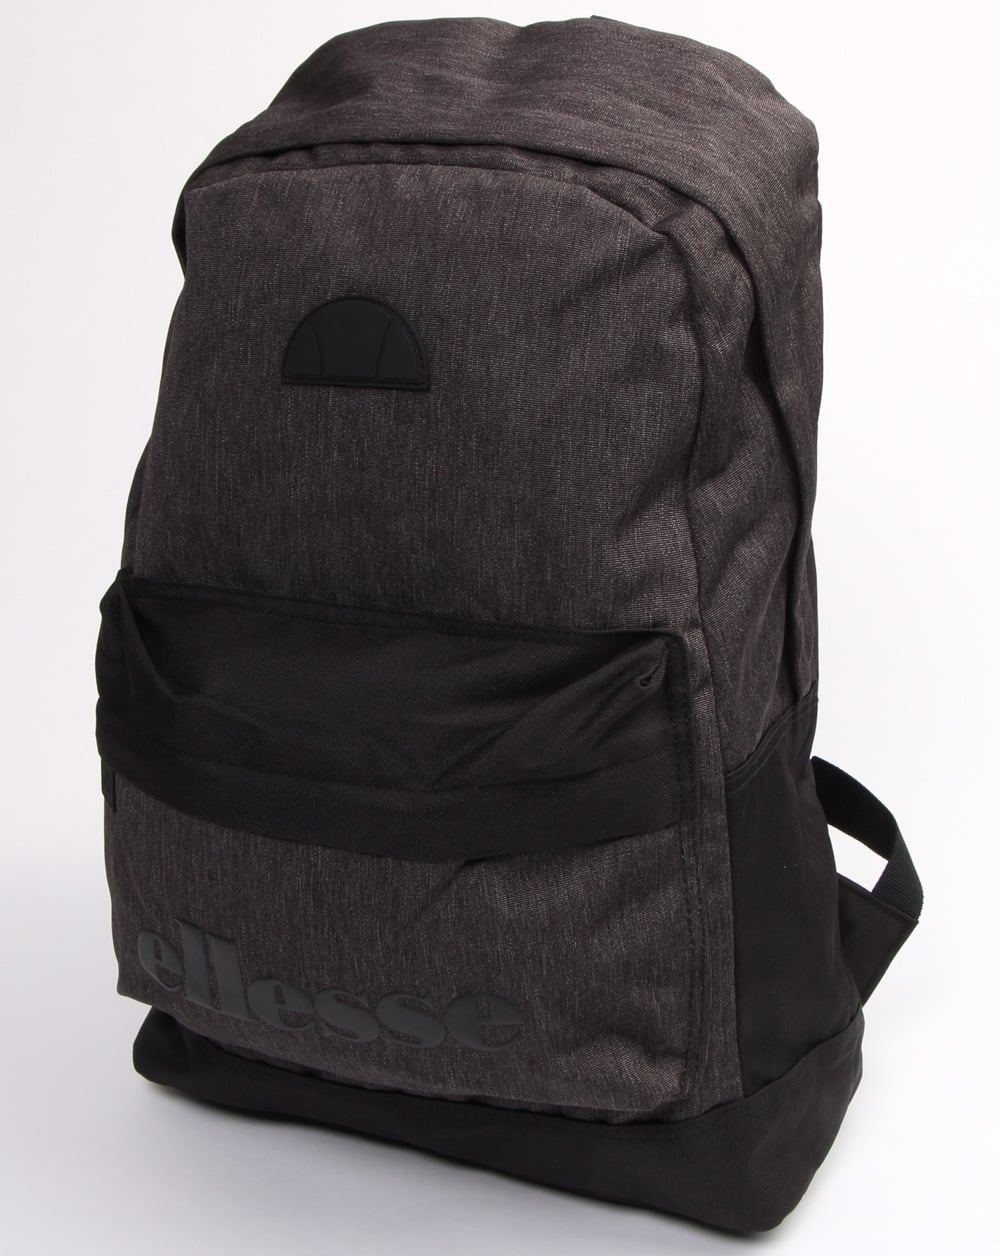 Ellesse Ellesse Regent II Backpack Black charcoal Marl 25cbc069e1b11